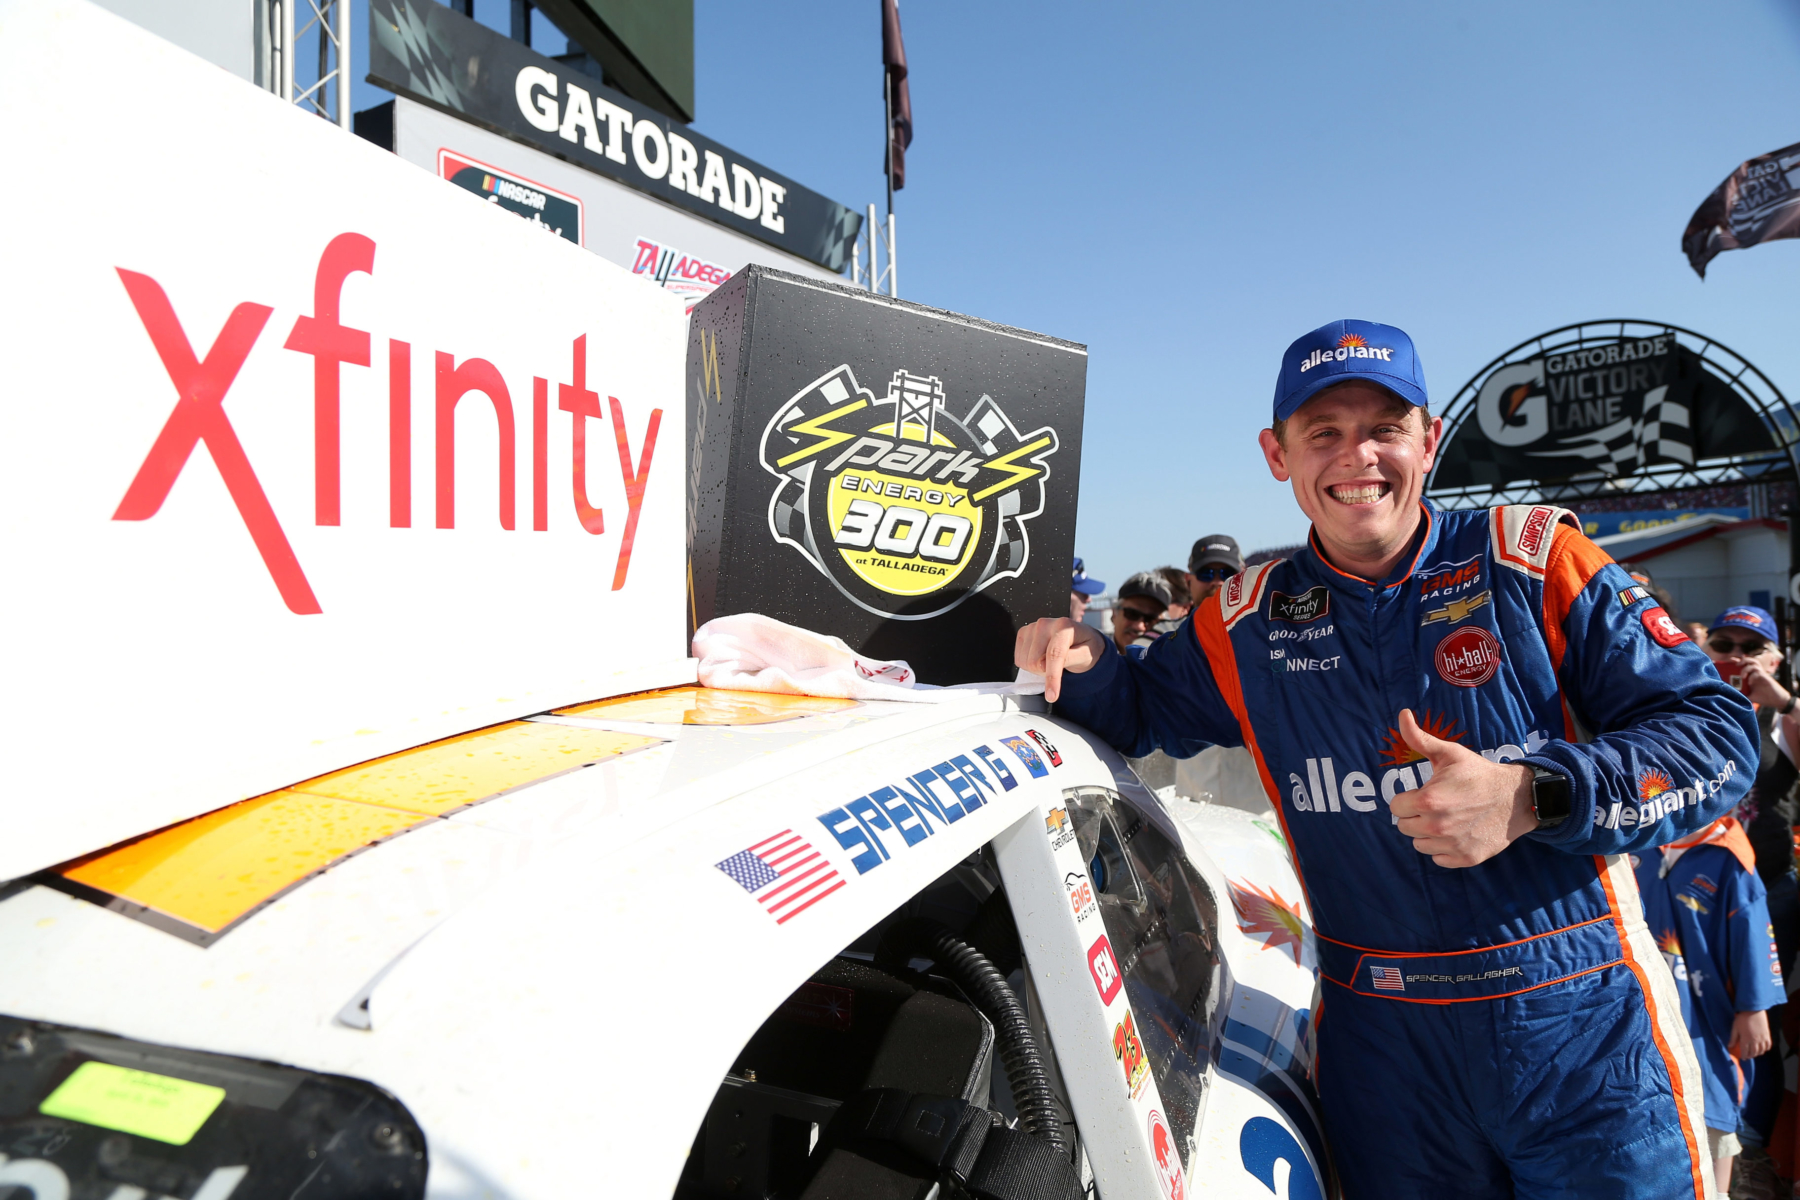 Spencer Gallagher wins the NASCAR Xfinity Series event at Talladega Superspeedway